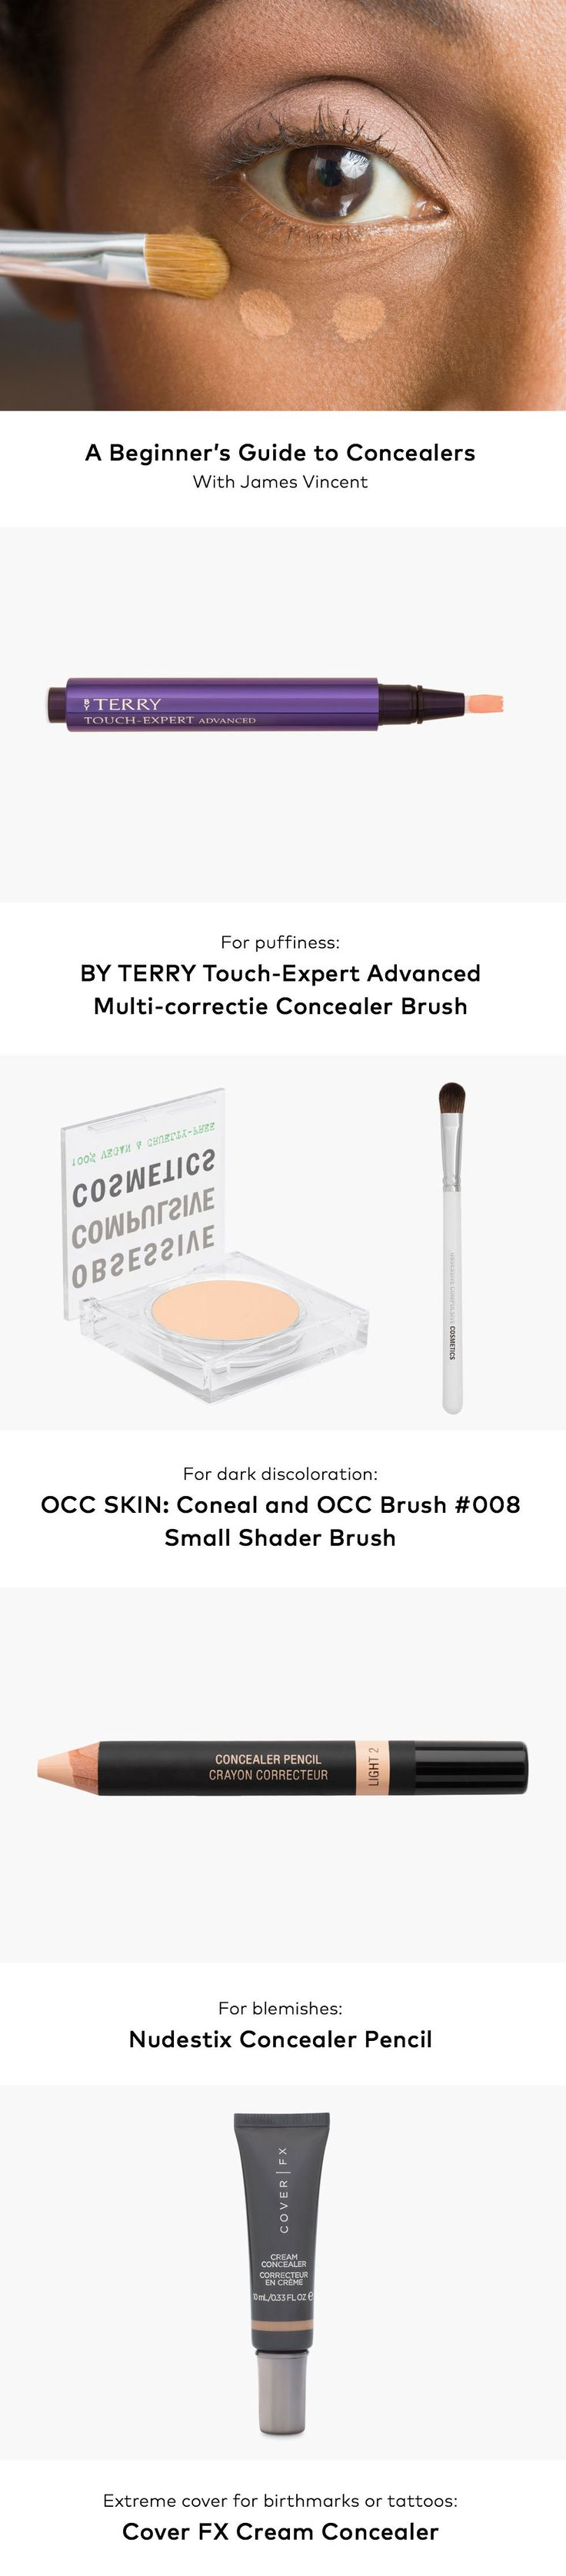 Makeup for Beginners: How to Use Concealer | Beautylish